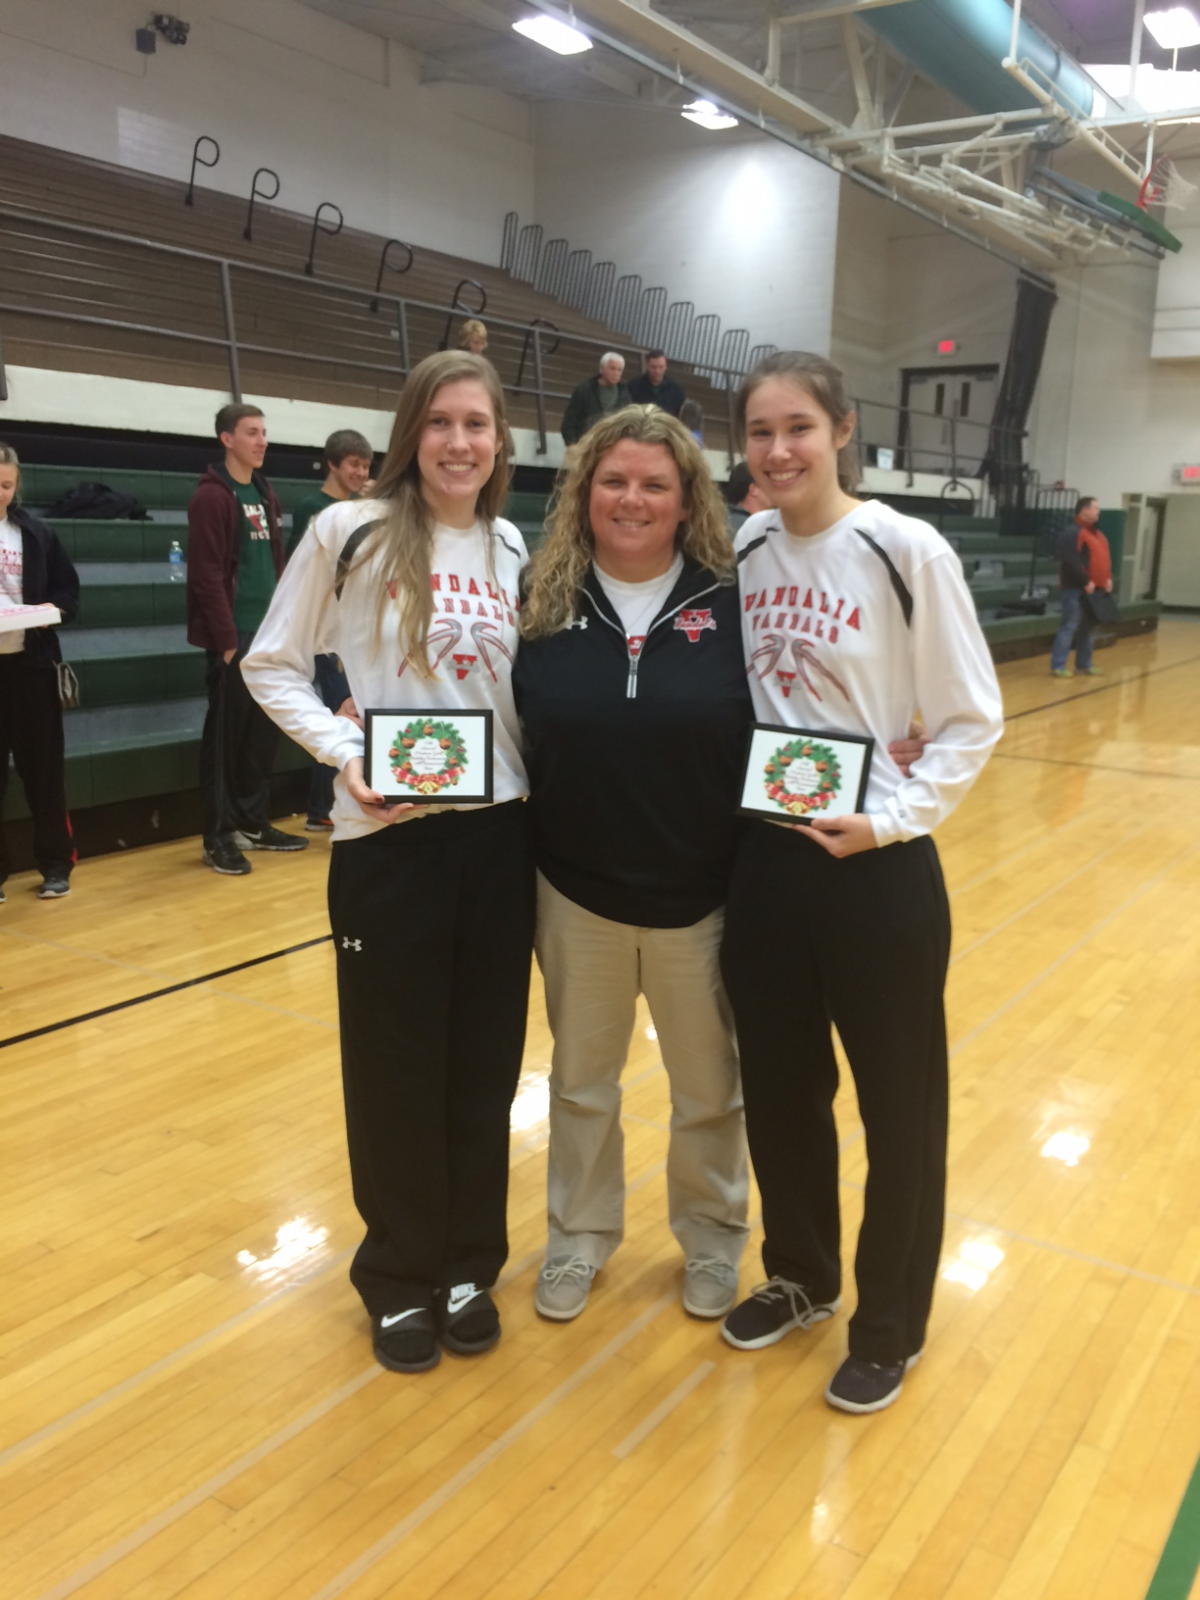 Lady Vandals place 2 on All Tournament Team at Mattoon